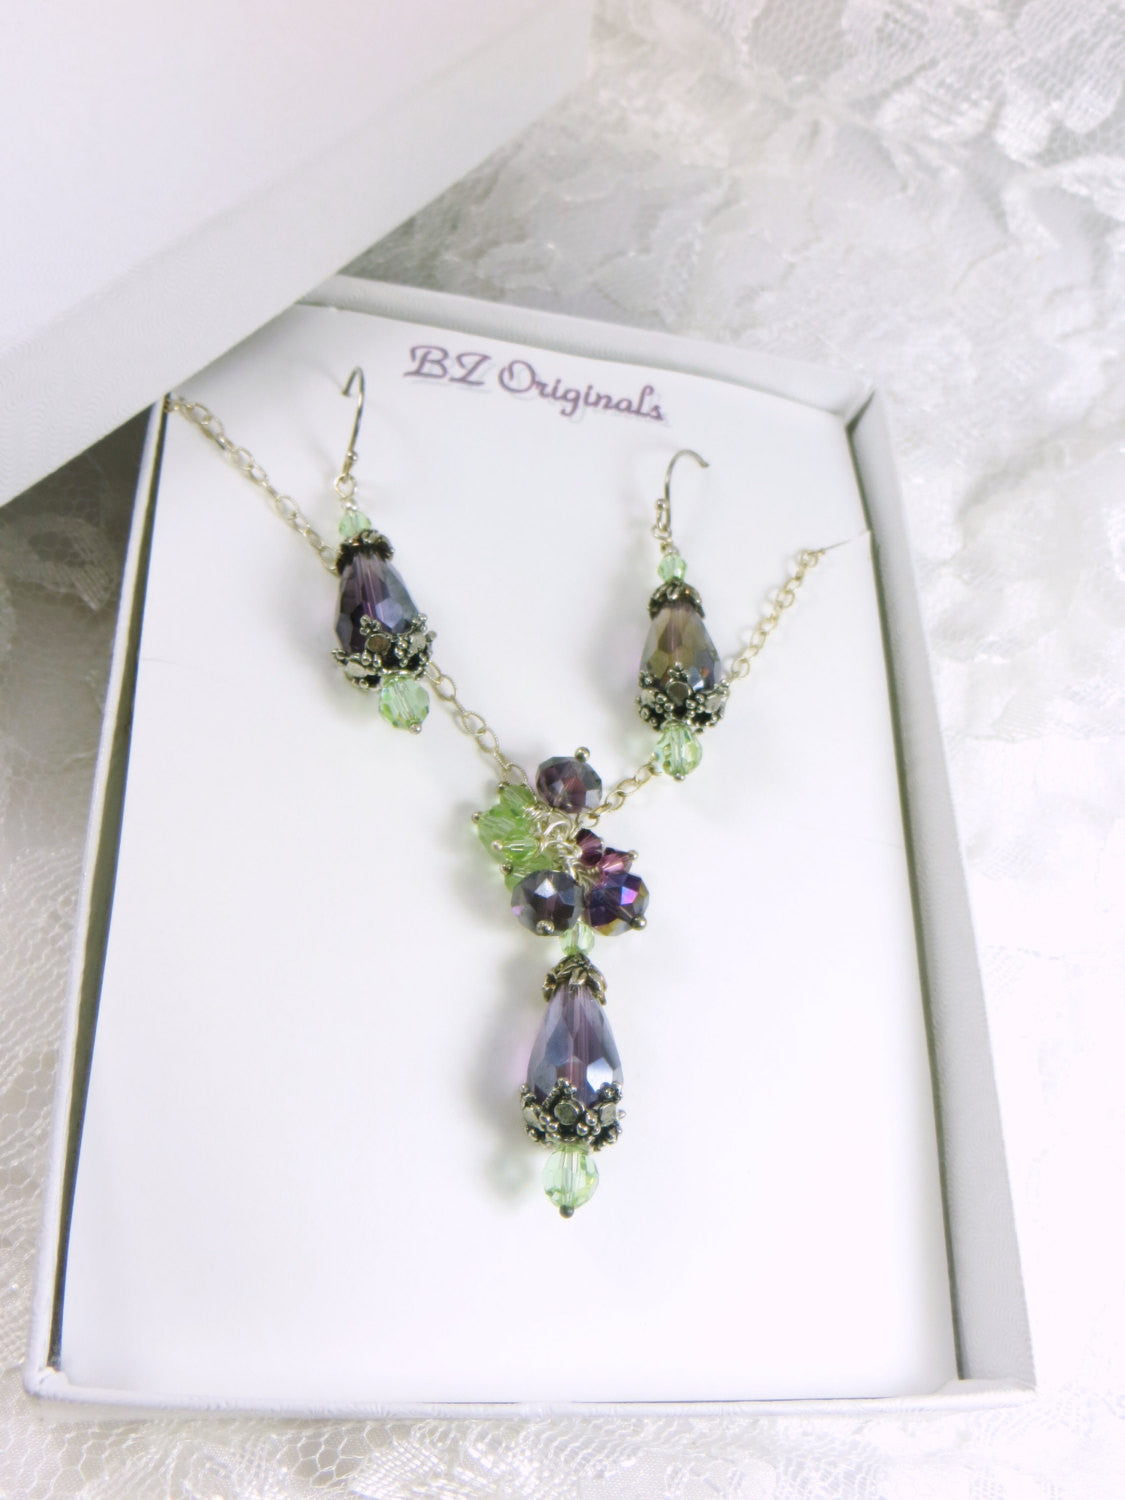 COLOR CHANGING Bridal or Bridesmaid Necklace Earring Set in Purple Amethyst and Swarovski Mint Green Cantaloupe changing to Lavender Rose - Odyssey Creations